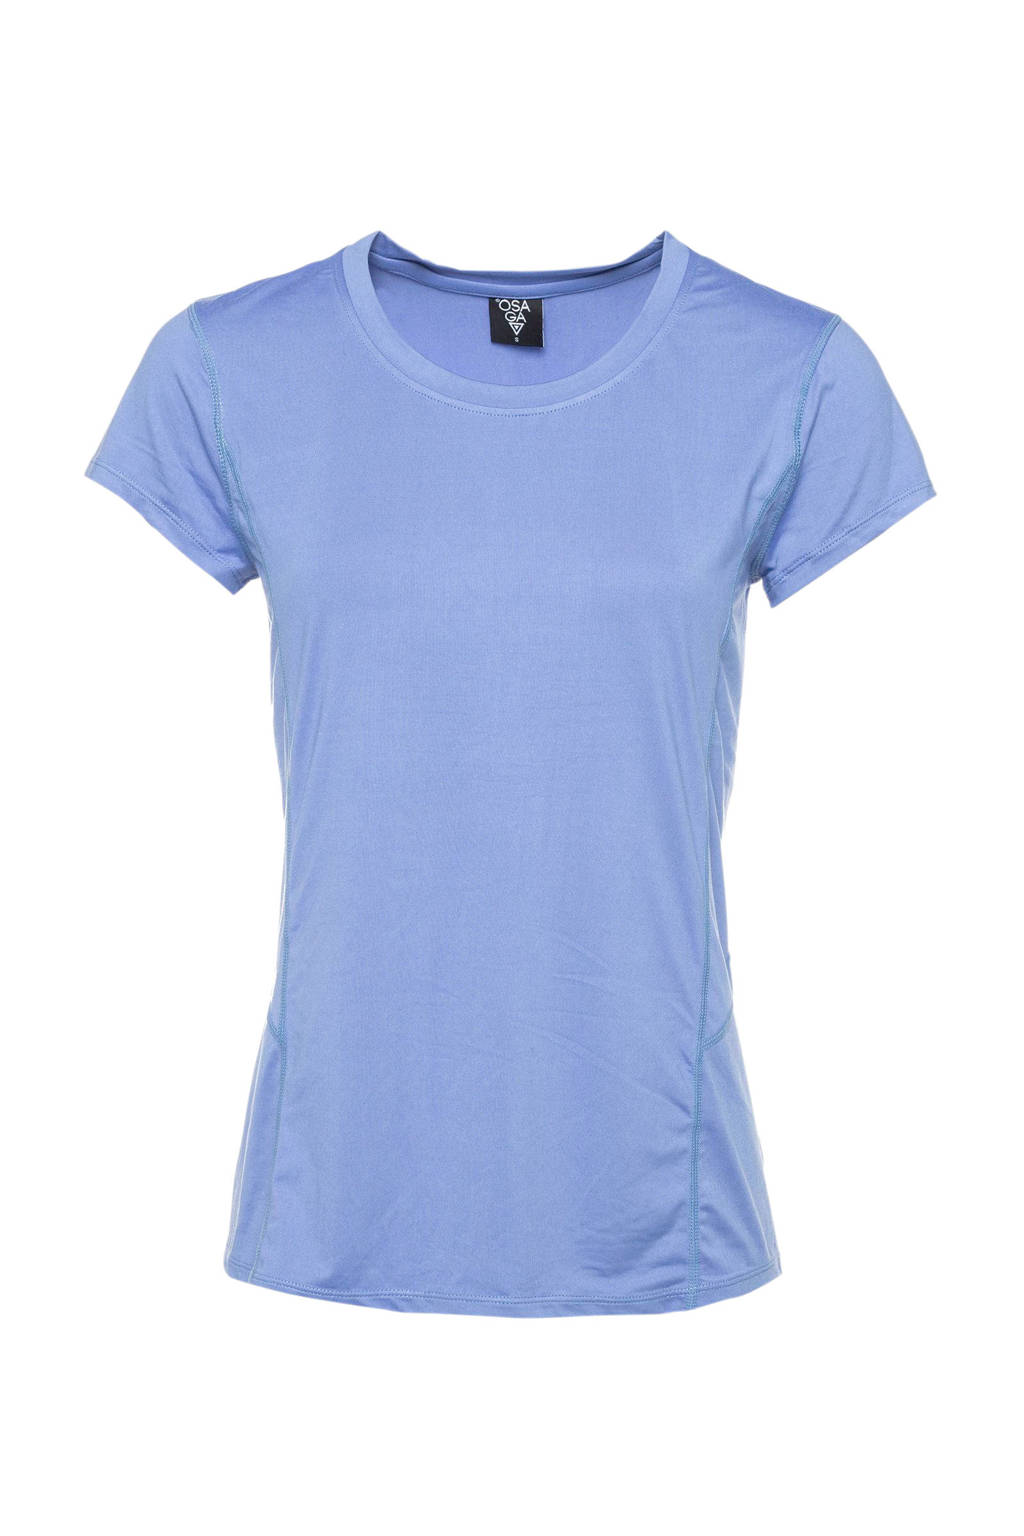 Scapino Osaga sport T-shirt paars, Paars